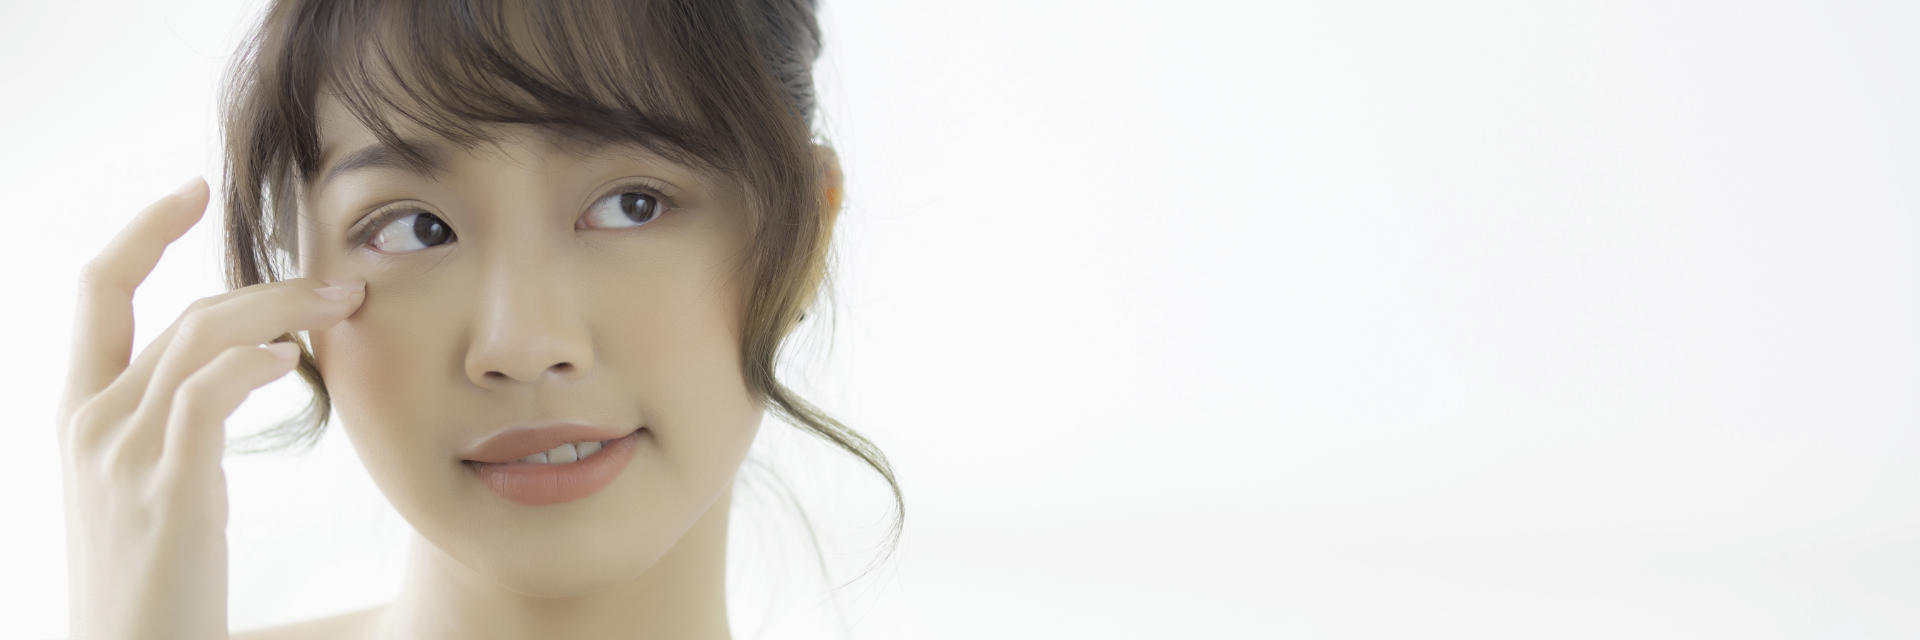 Face of young Asian woman with double eyelid after eyelid surgery.